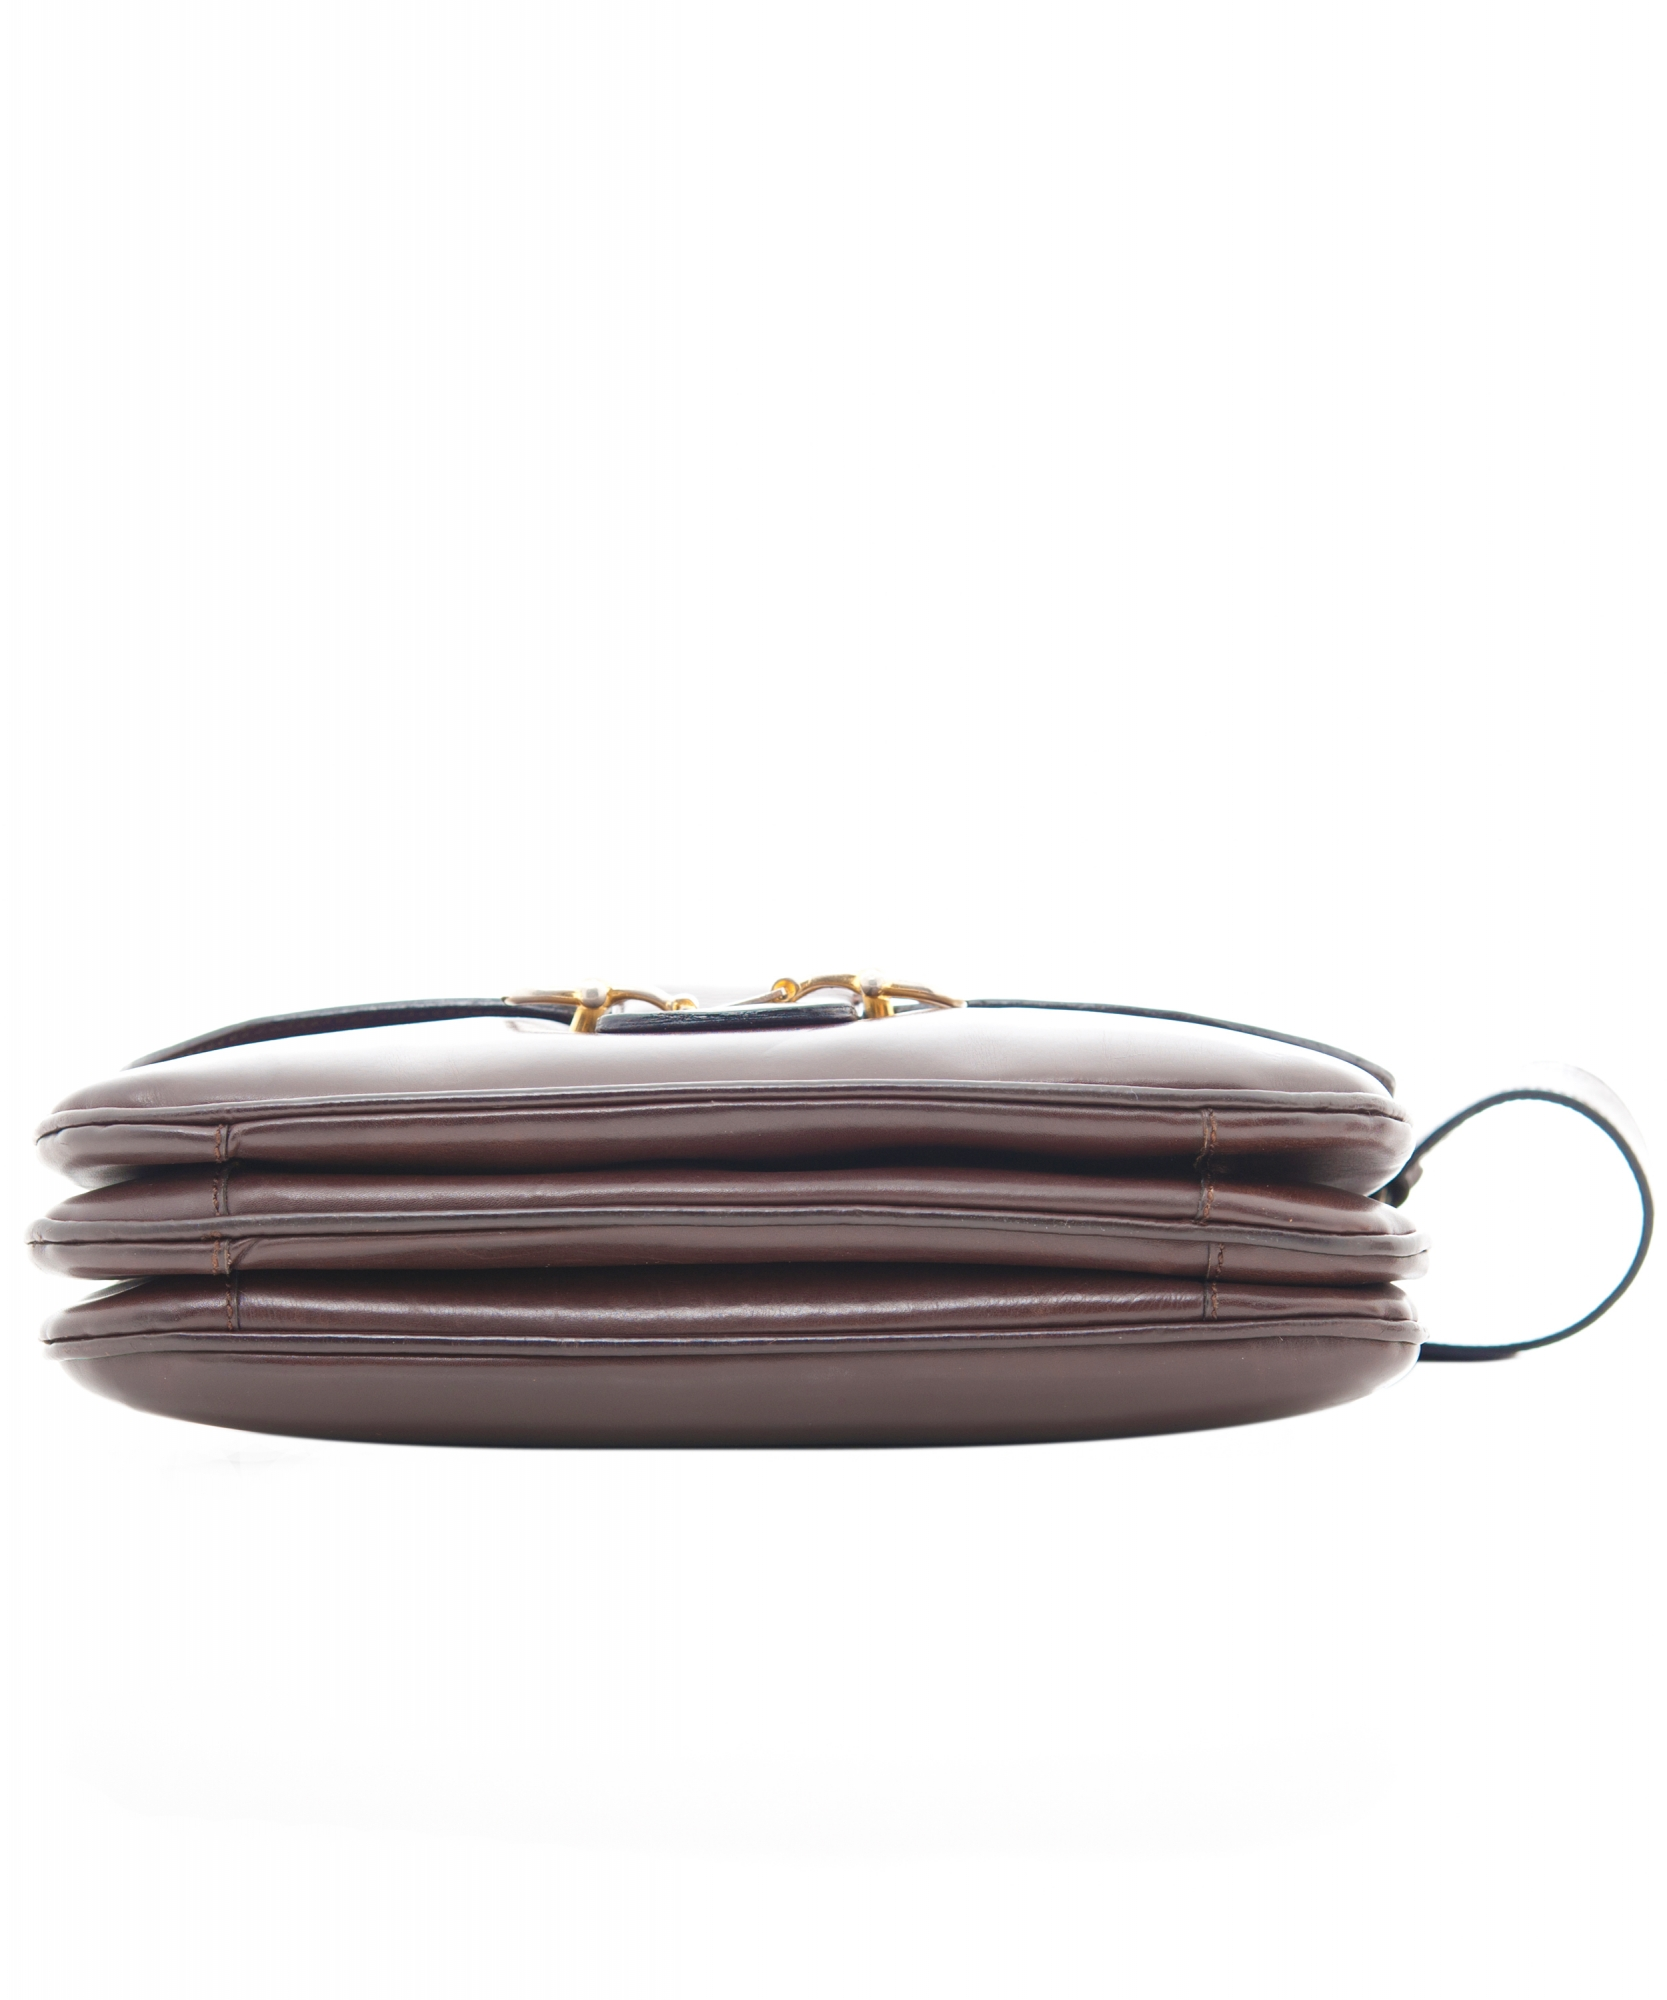 aad187c1a8 Céline Vintage Brown Leather Shoulder Bag Céline Vintage Brown Leather Shoulder  Bag ...